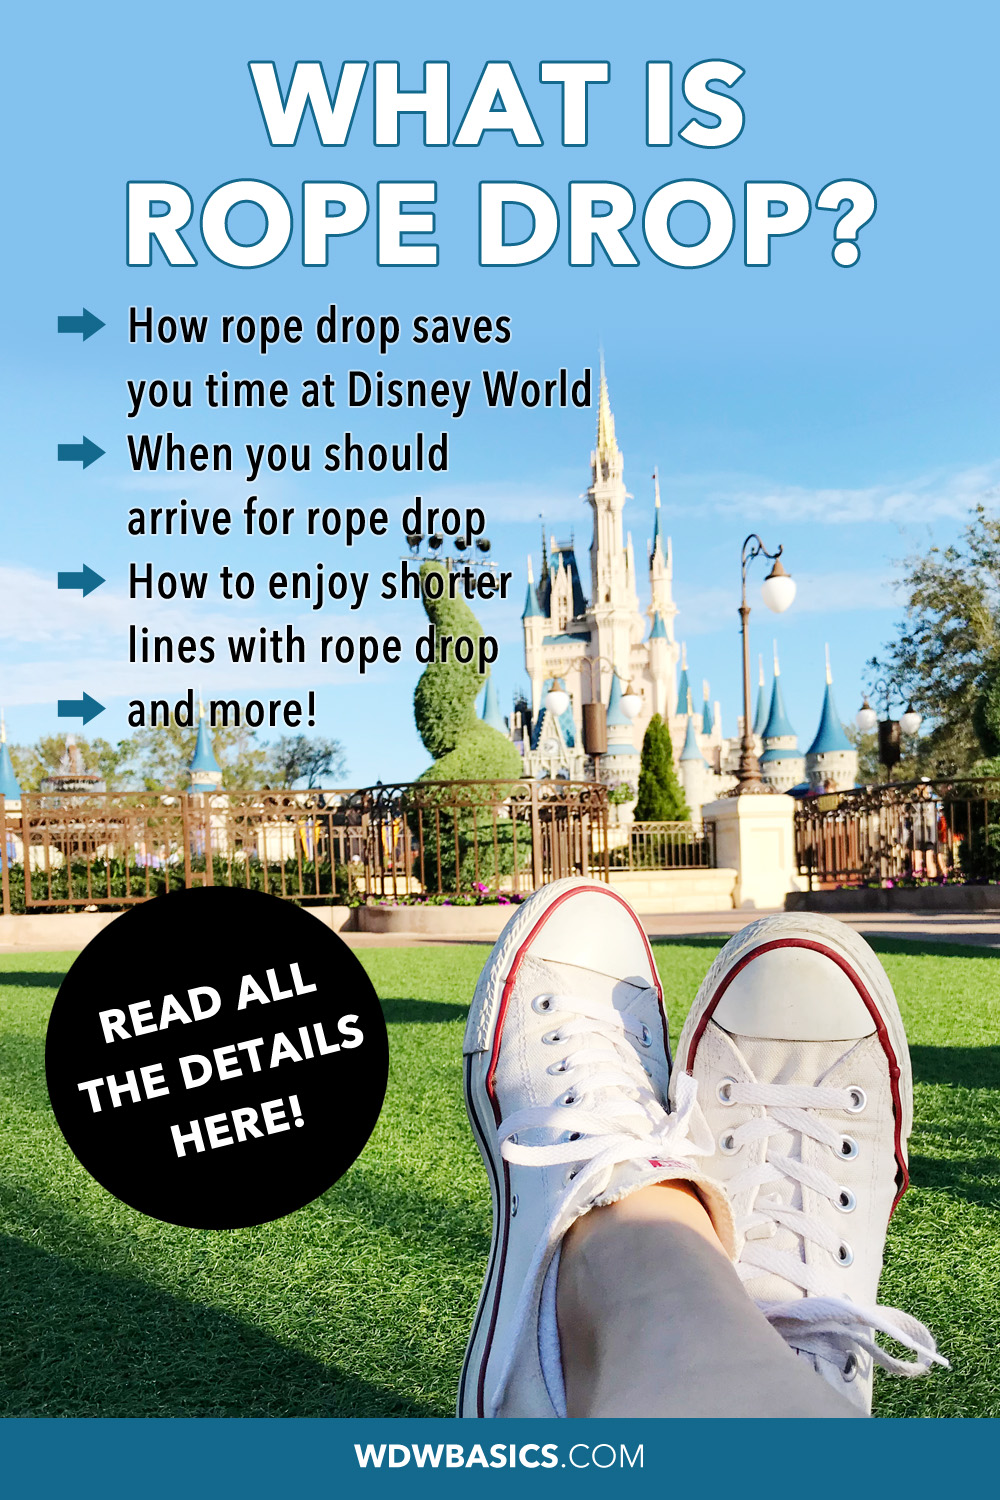 What is rope drop?